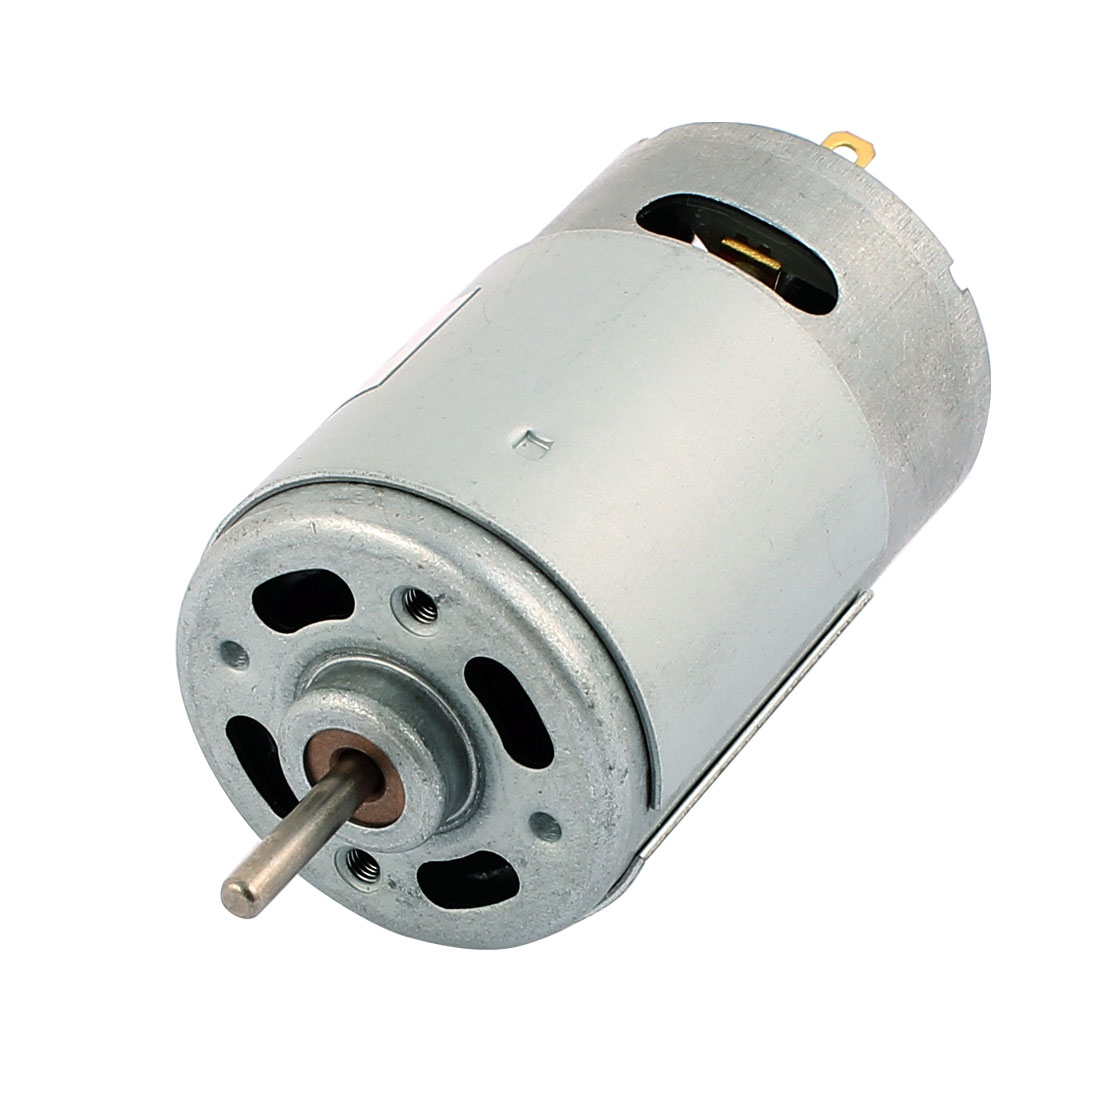 R555 DC 24V 3000R/Min Cylindrical Miniature Electric Tool Magnetic Motor